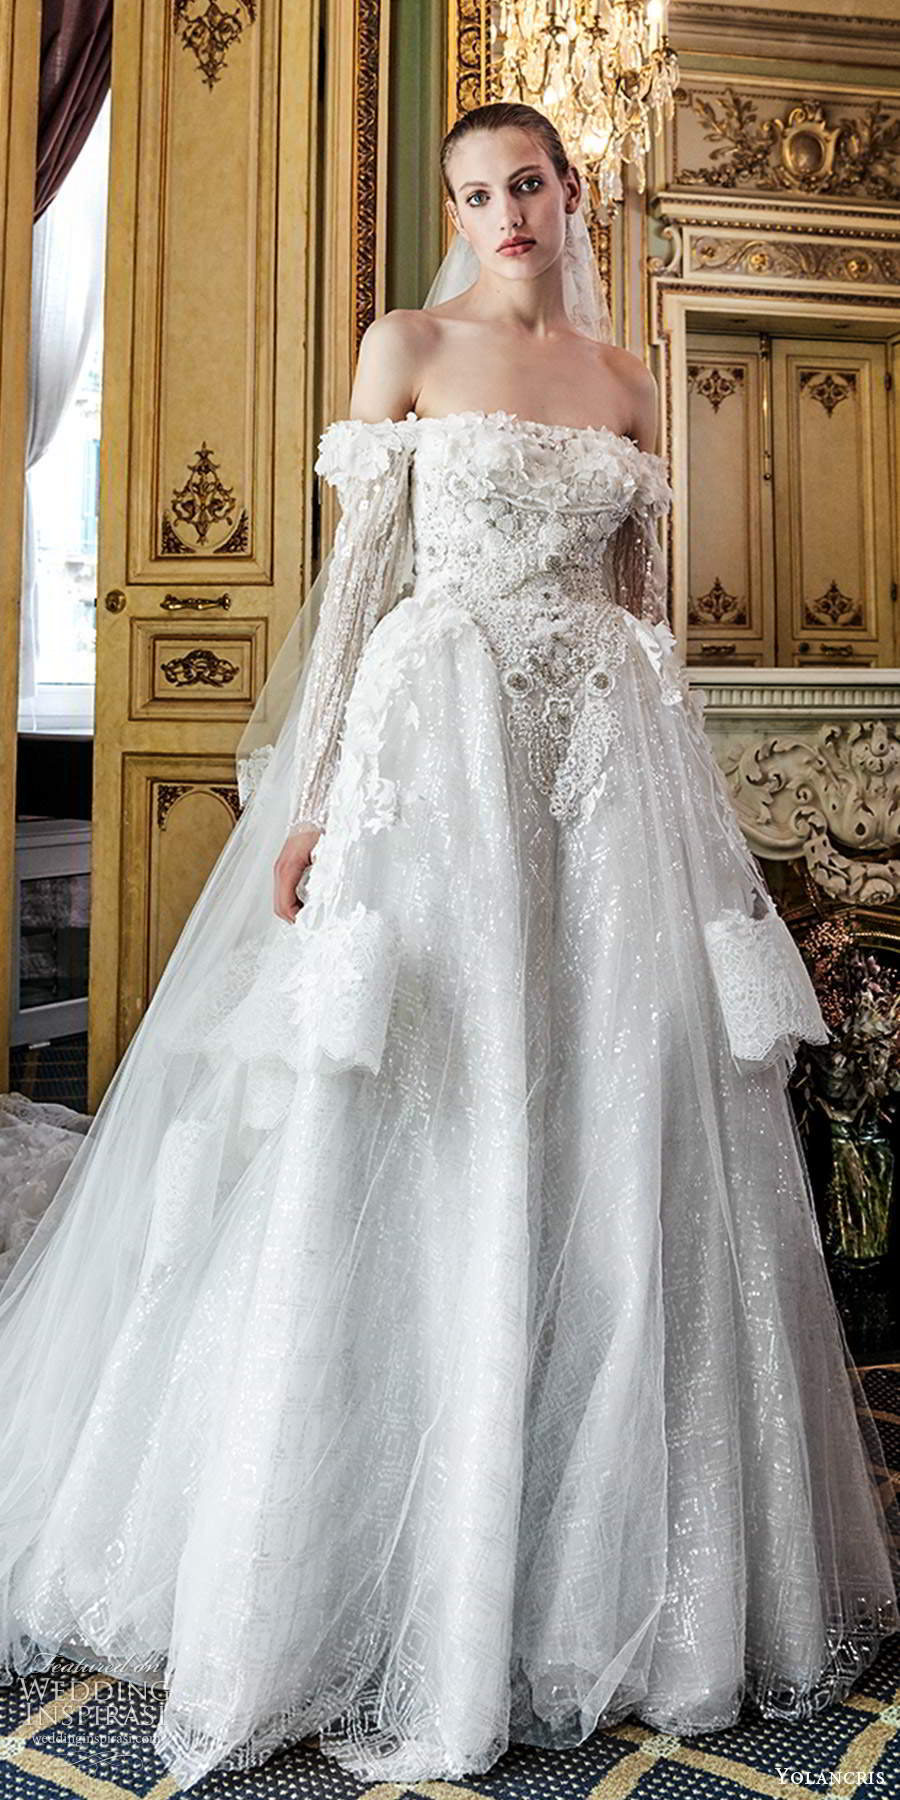 yolancris 2020 bridal couture long sleeves off shoulder neckline fully embellished a line ball gown cathedral train (1) lv